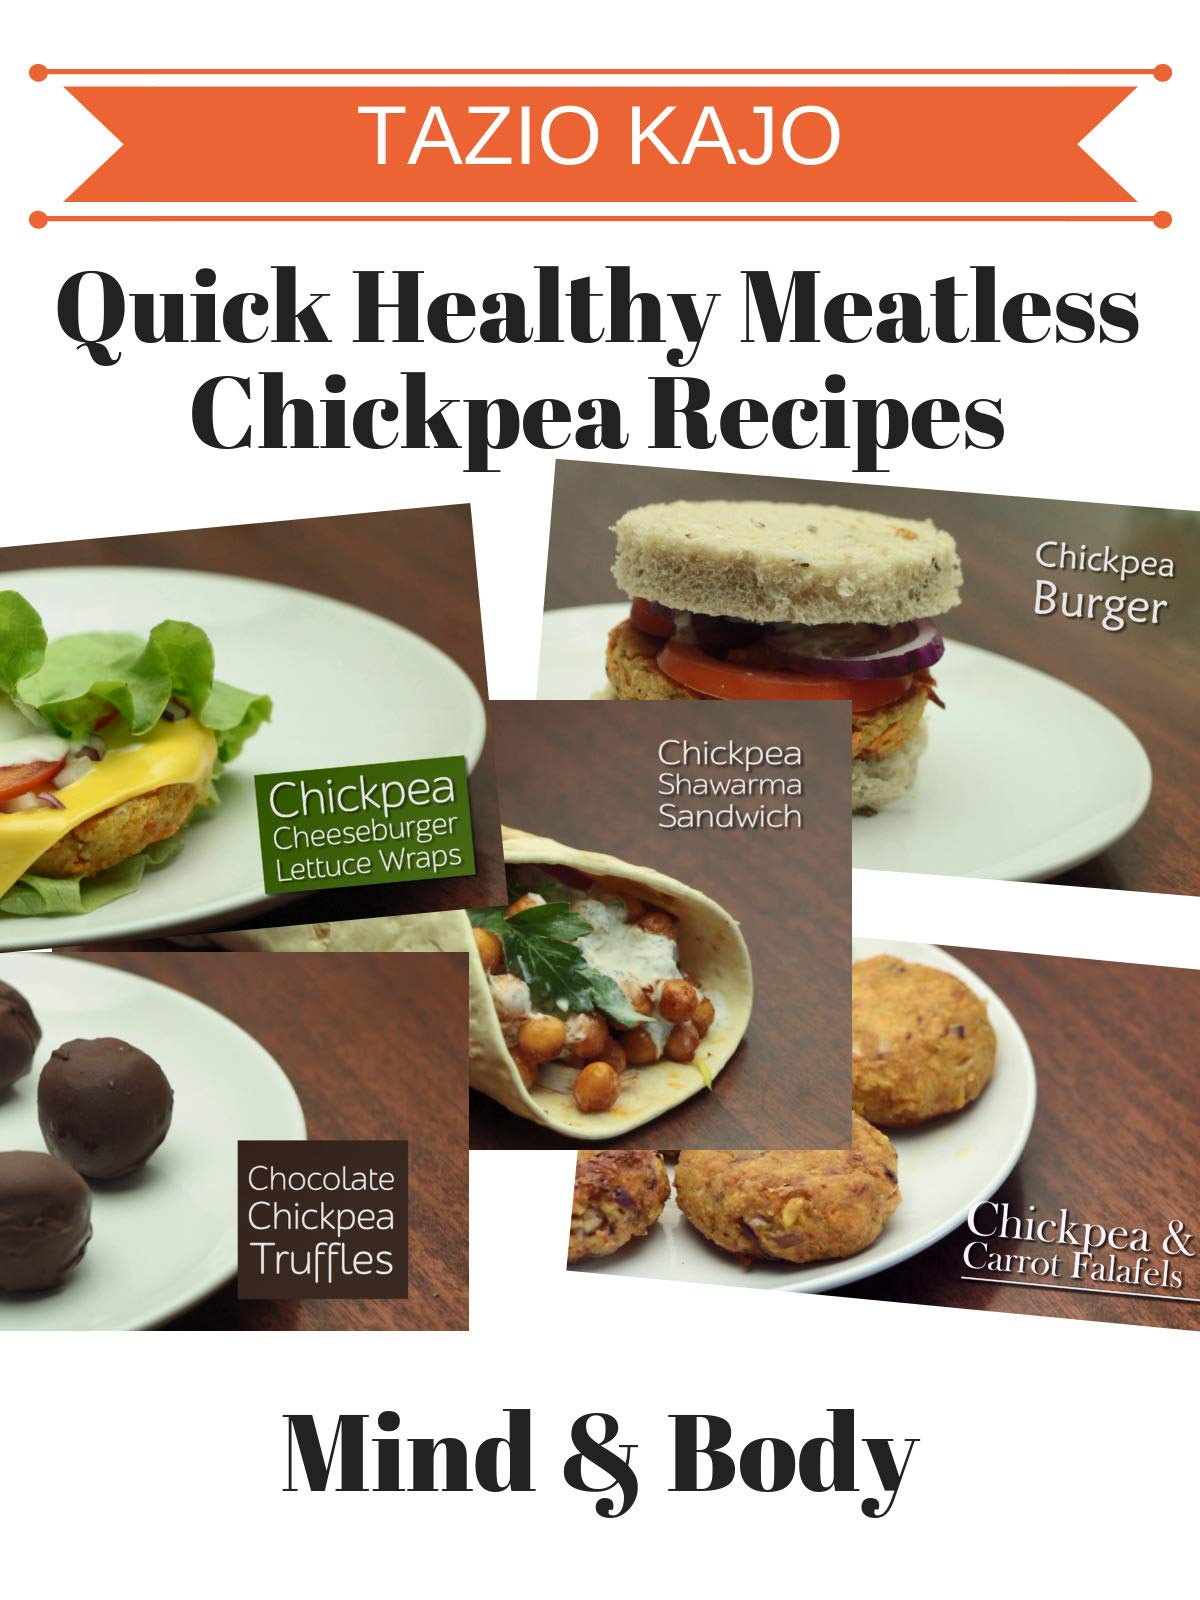 Quick Healthy Meatless Chickpea Recipes